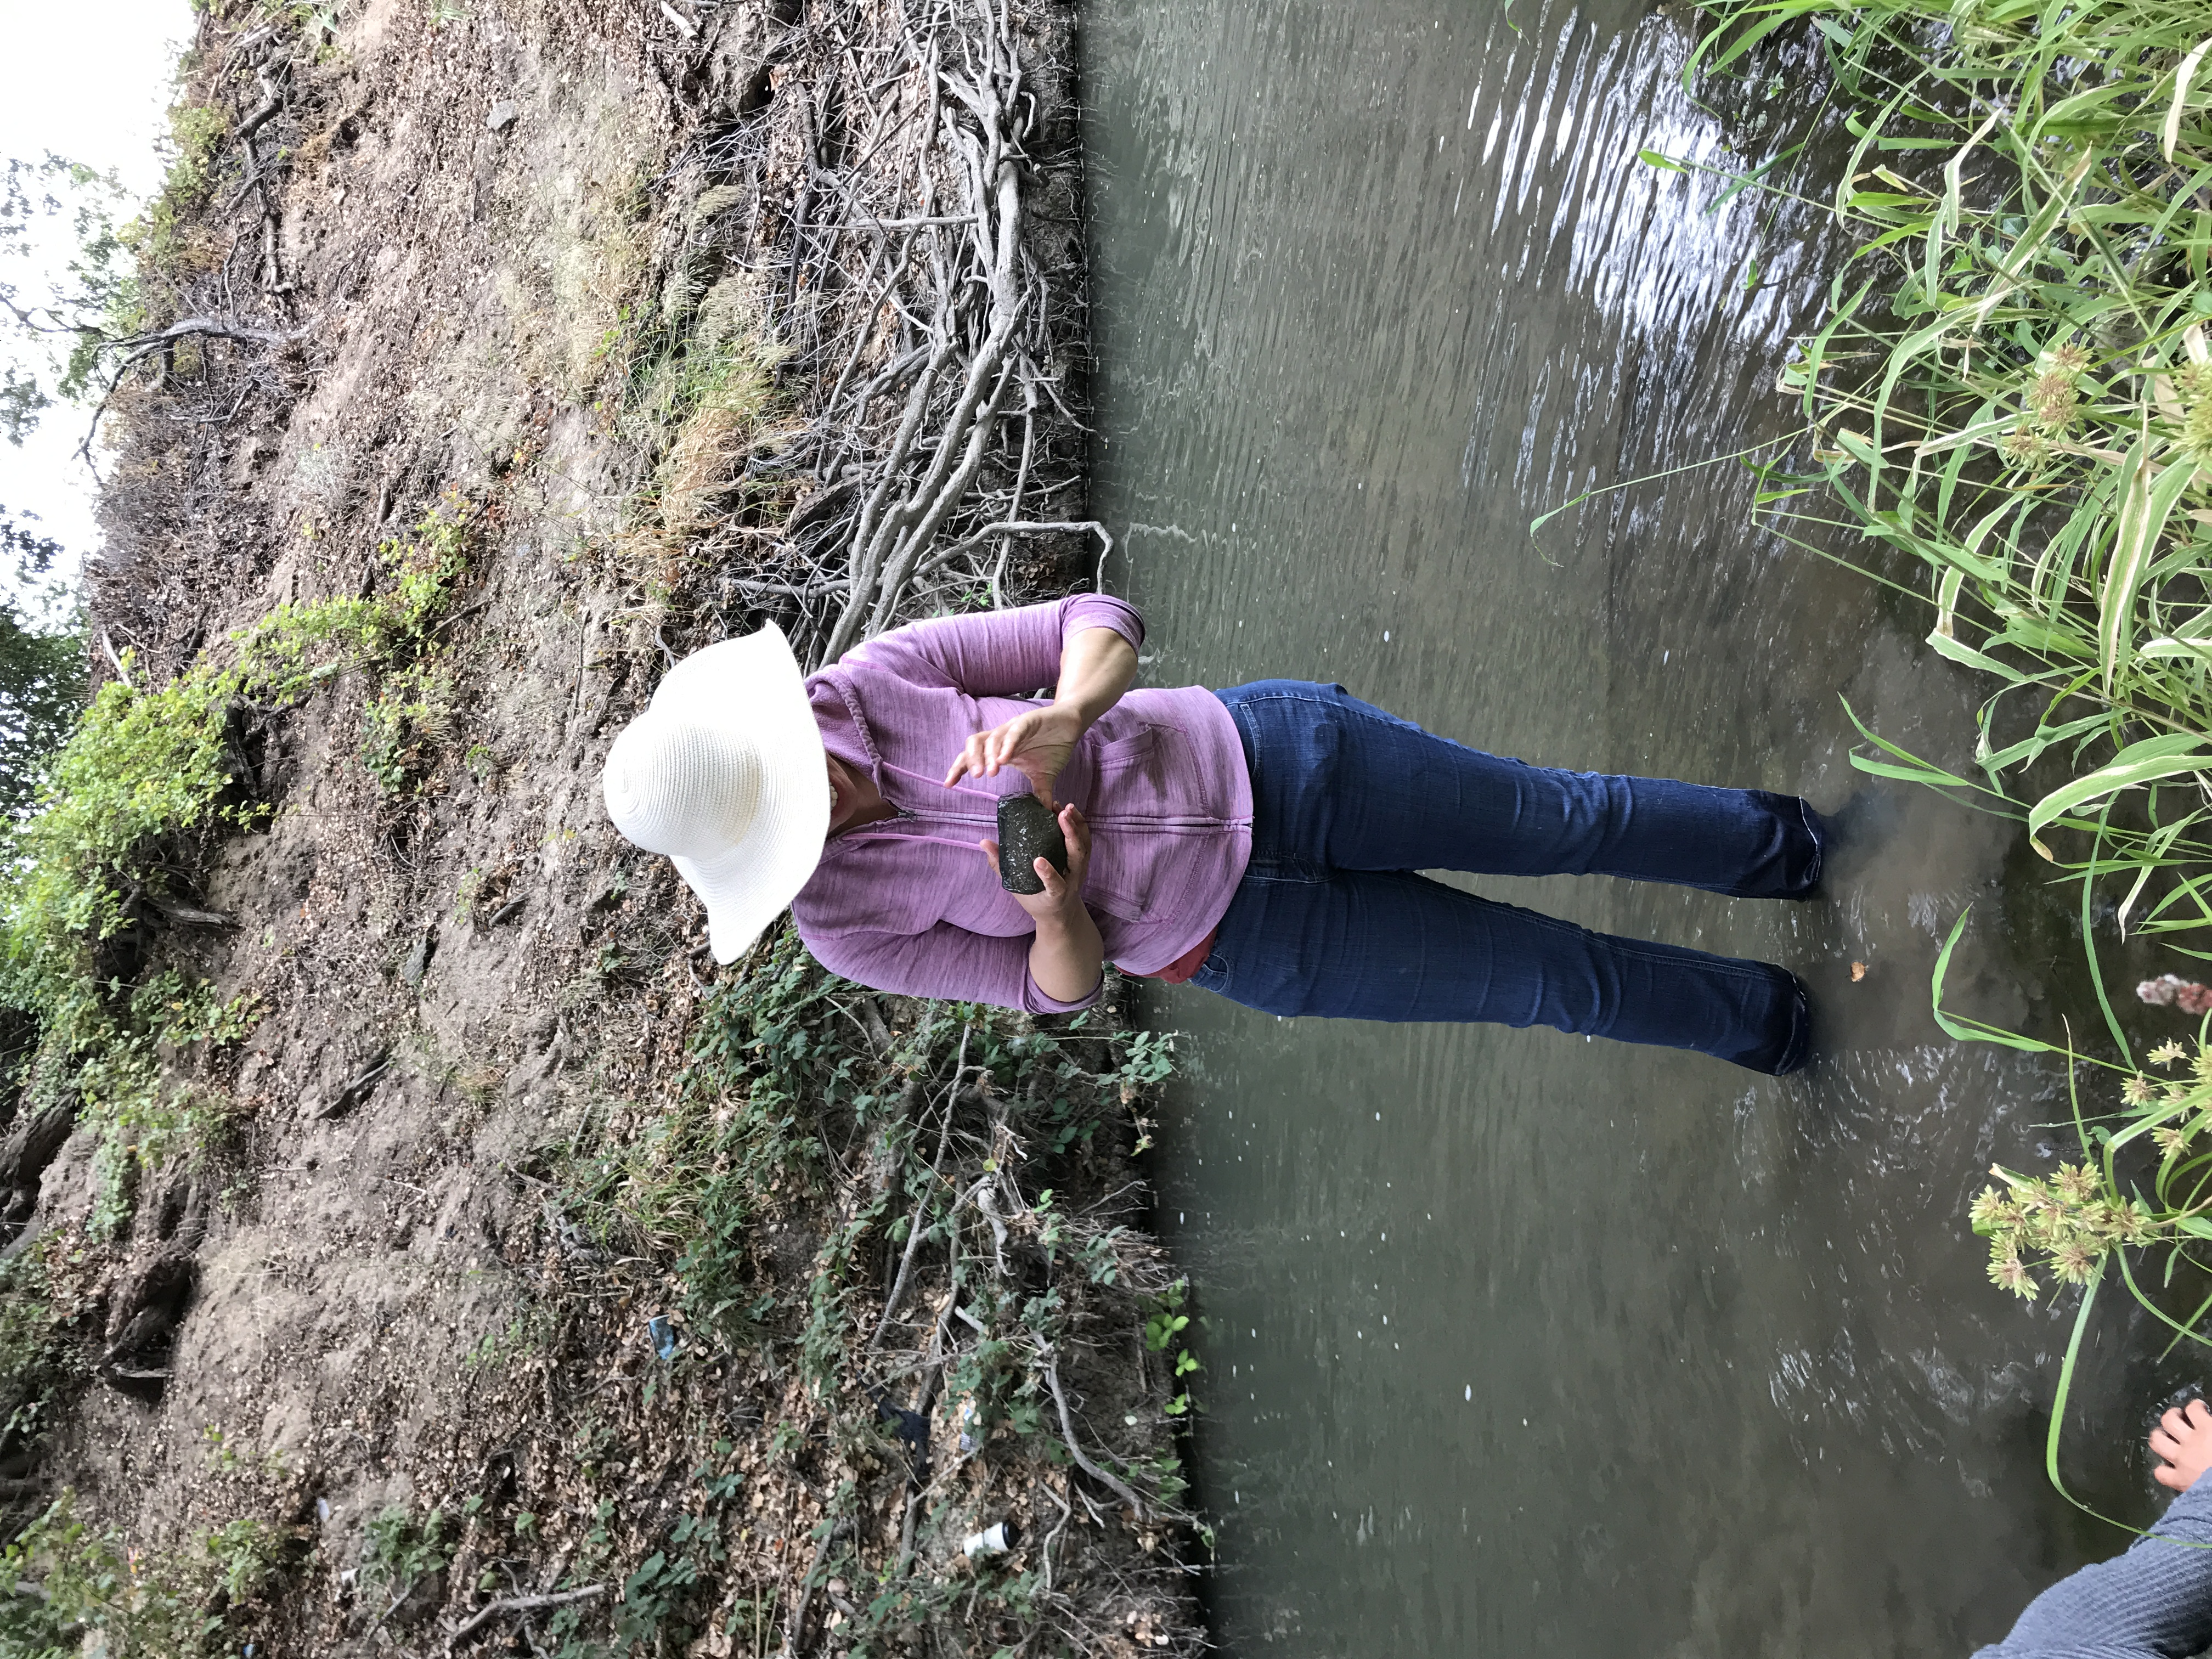 looking for aquatic insects